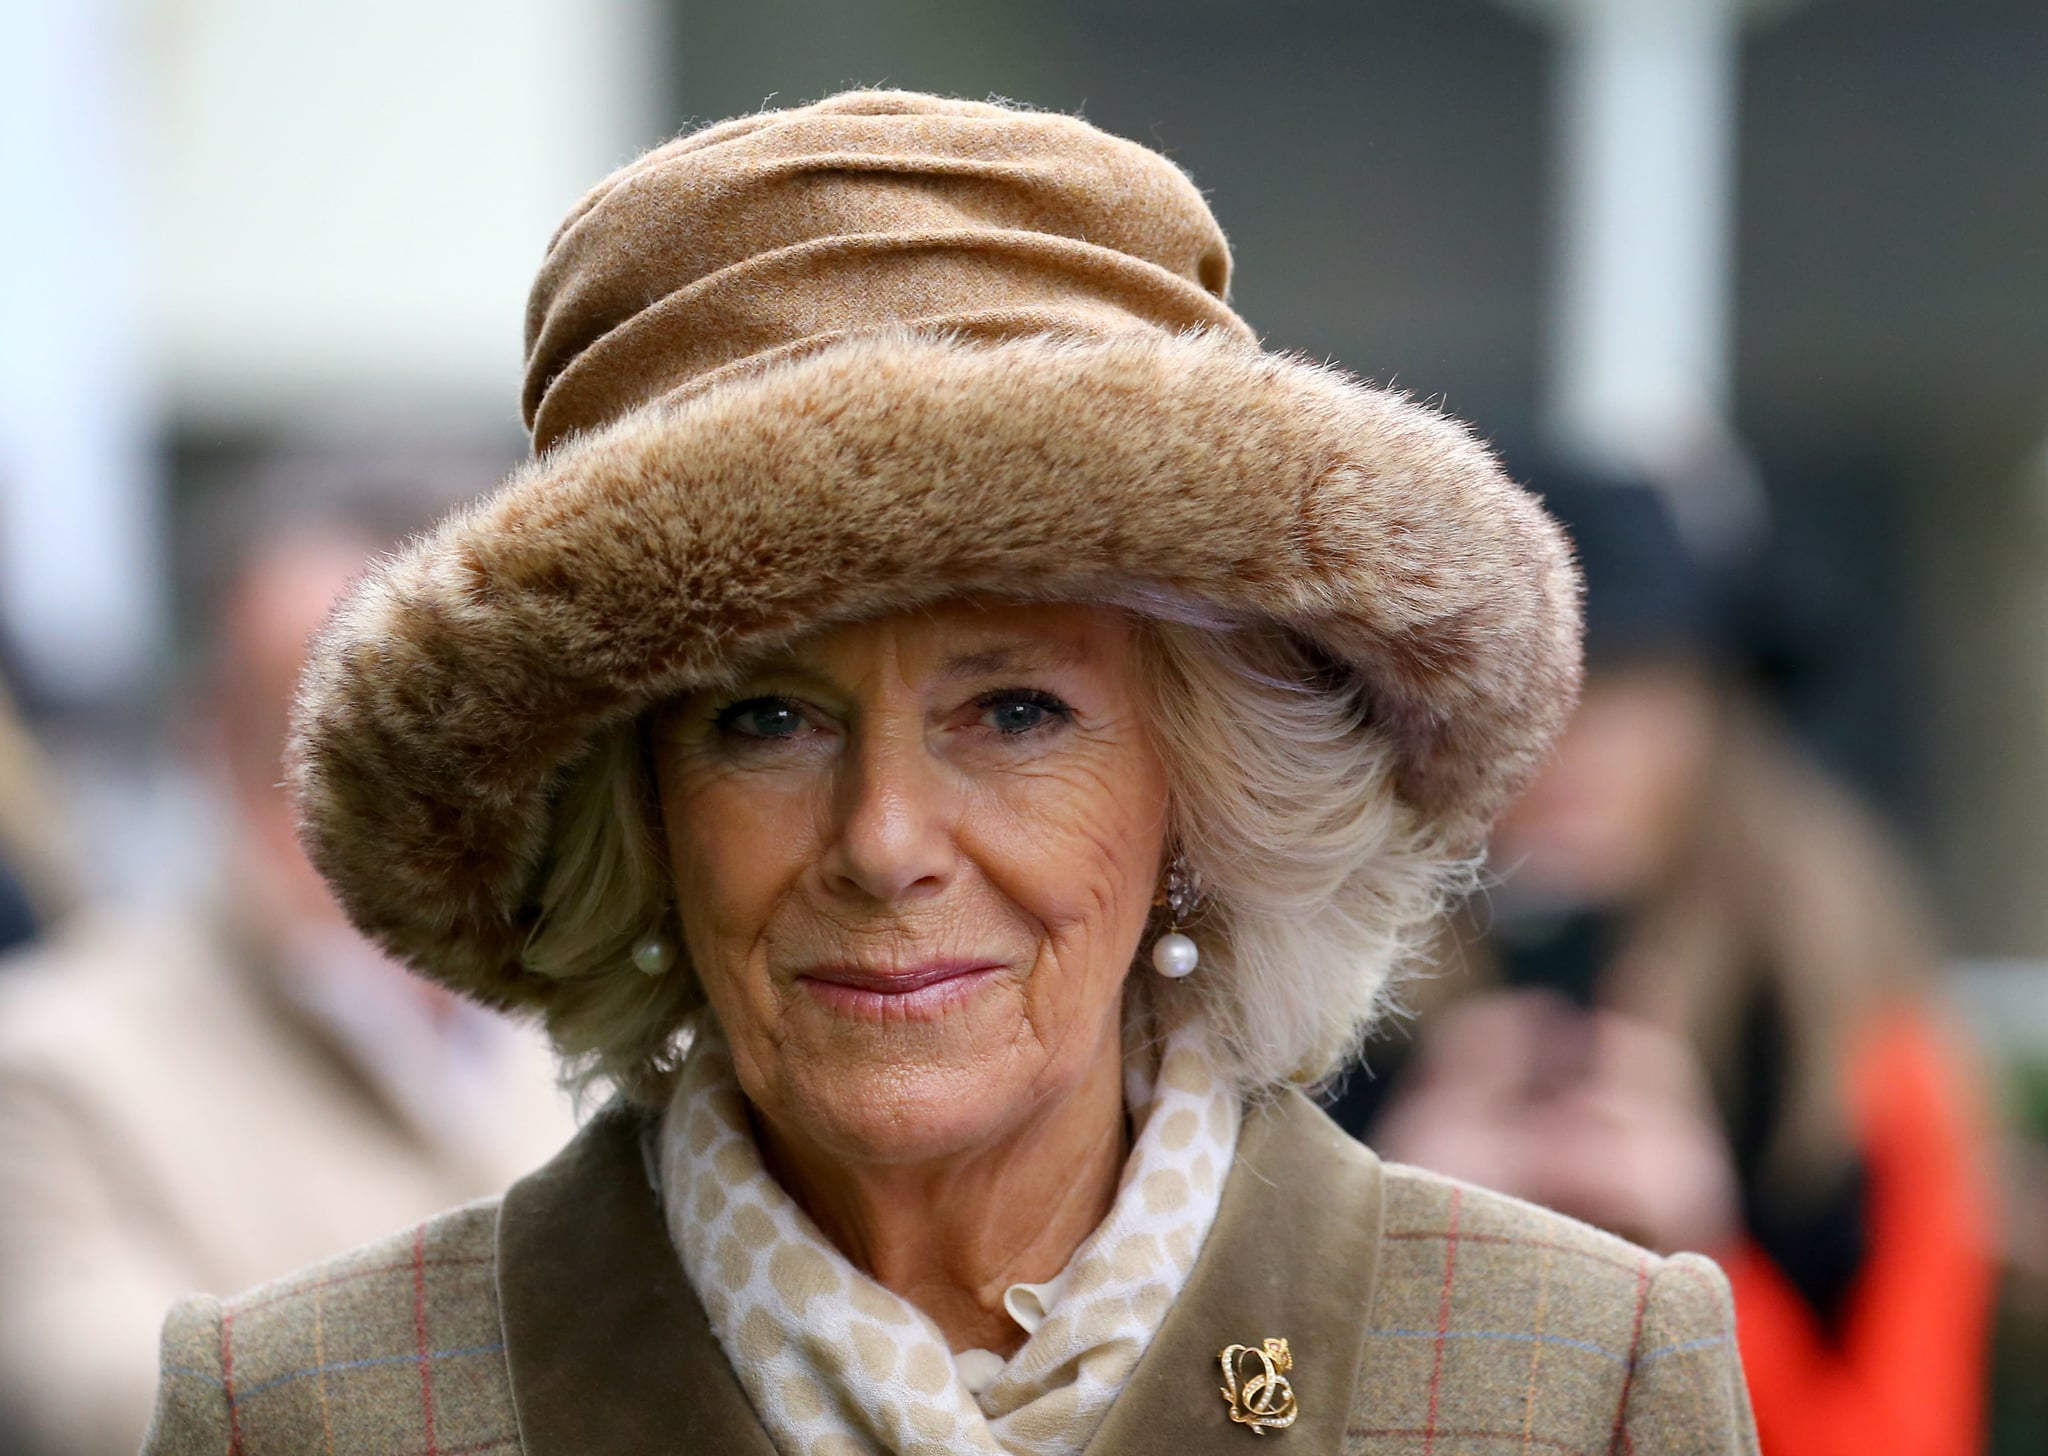 ASCOT, ENGLAND - NOVEMBER 23:   Camilla, Duchess of Cornwall attends The Prince's Countryside Fund Raceday at Ascot Racecourse on November 23, 2018 in Ascot, England. (Photo by Gareth Fuller - WPA Pool/Getty Images)